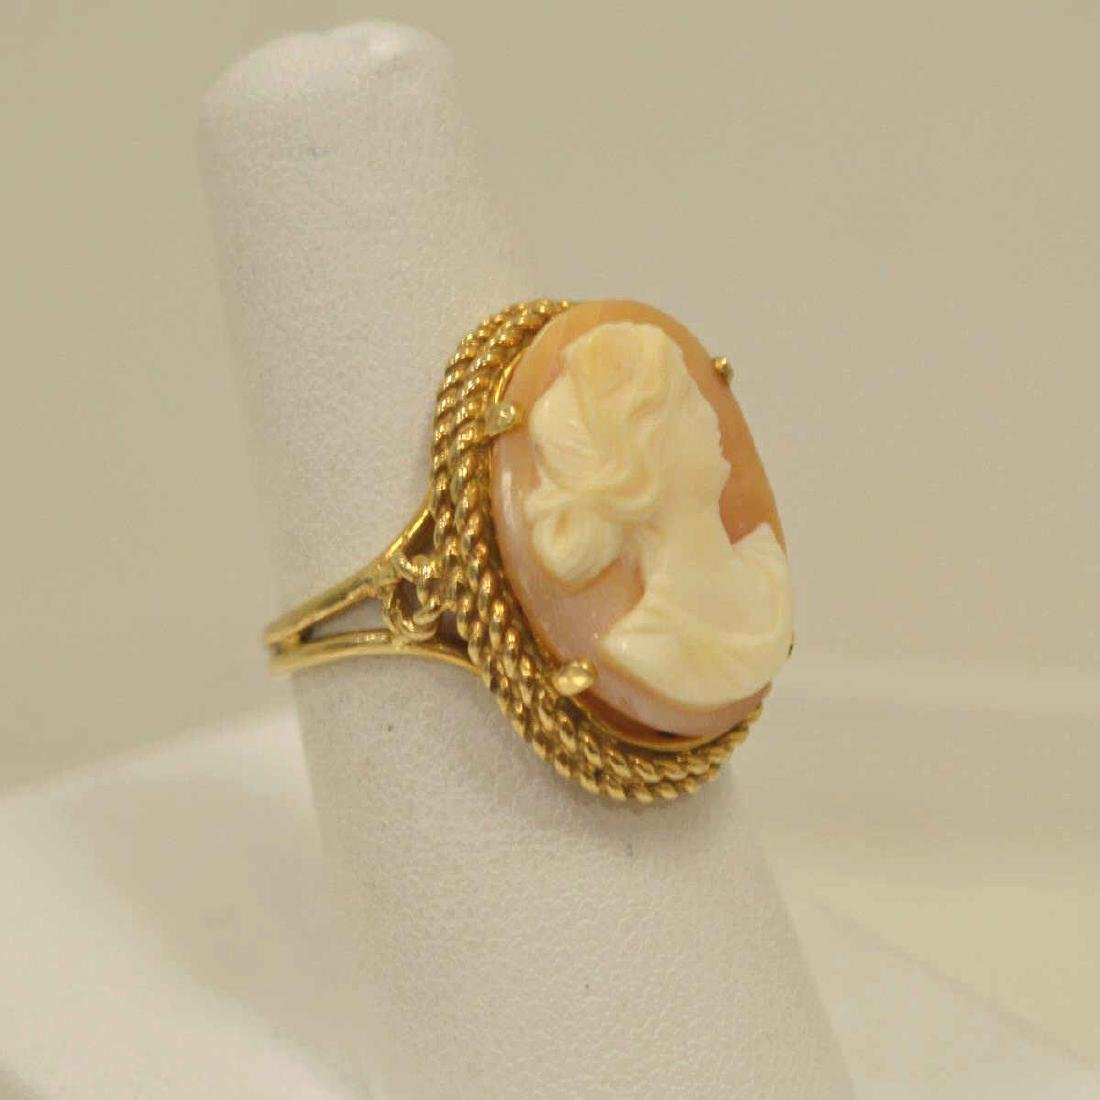 10kt yellow gold cameo ring - 2